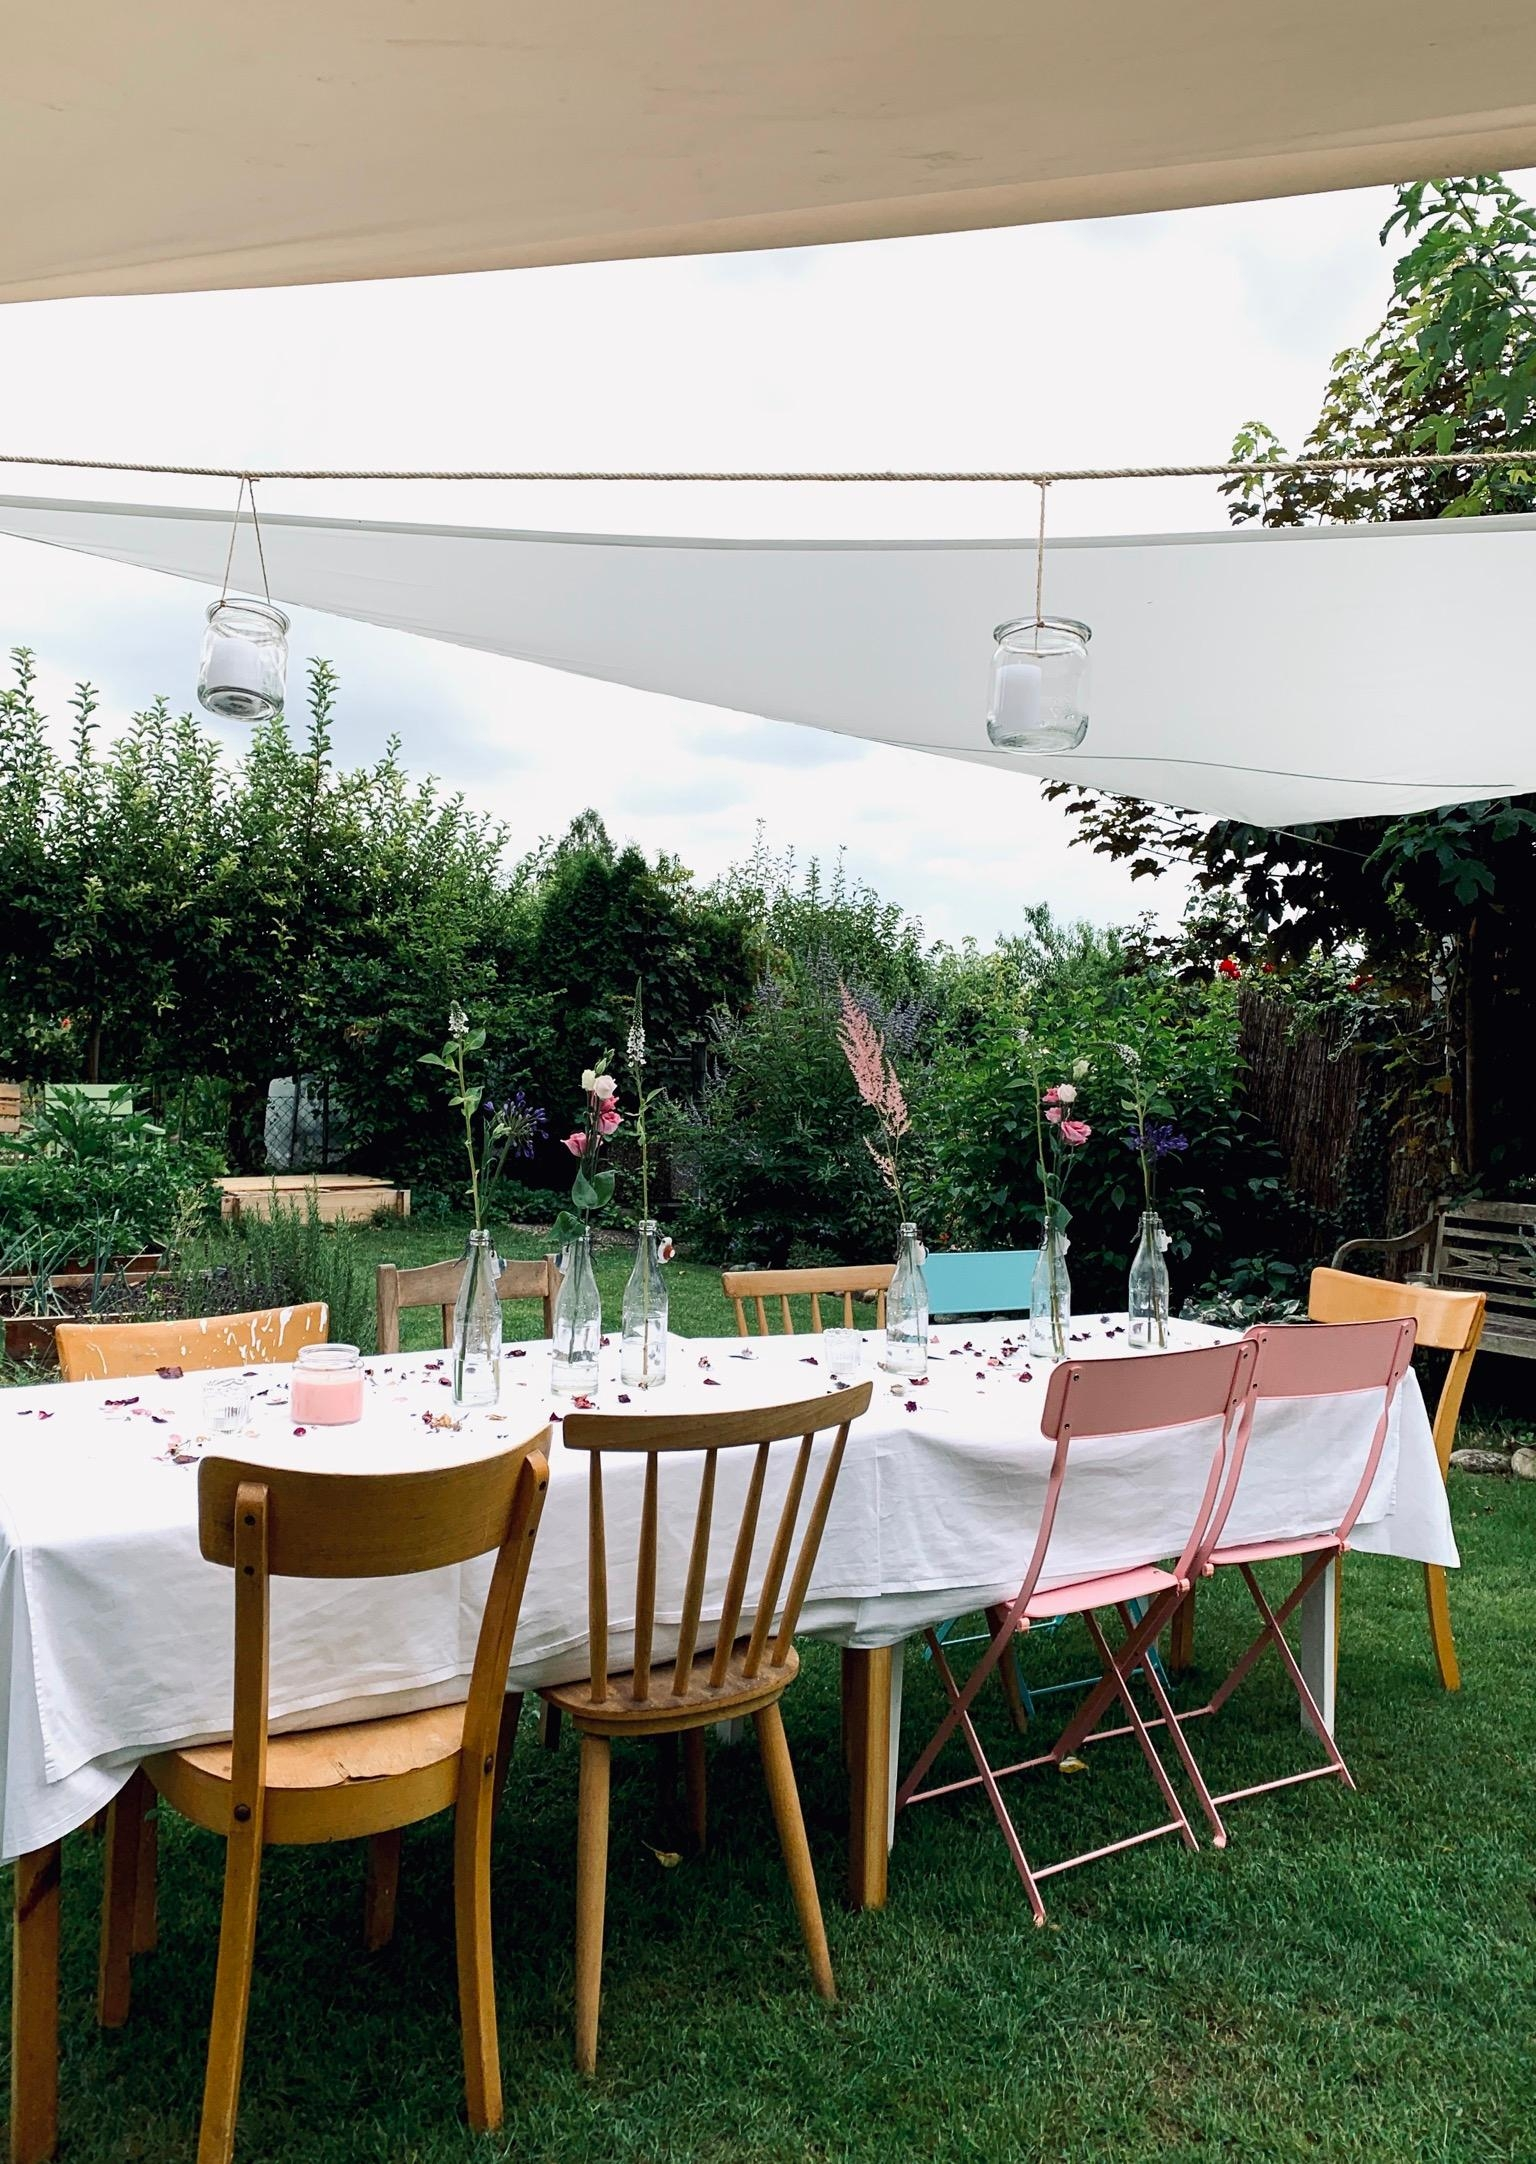 Gleich gehts los gartenparty bohemian mystyle couchliebt couchstyle urbangarden bohostyle  6d06e7d2 7b2f 4071 8558 5f68e9d797f5